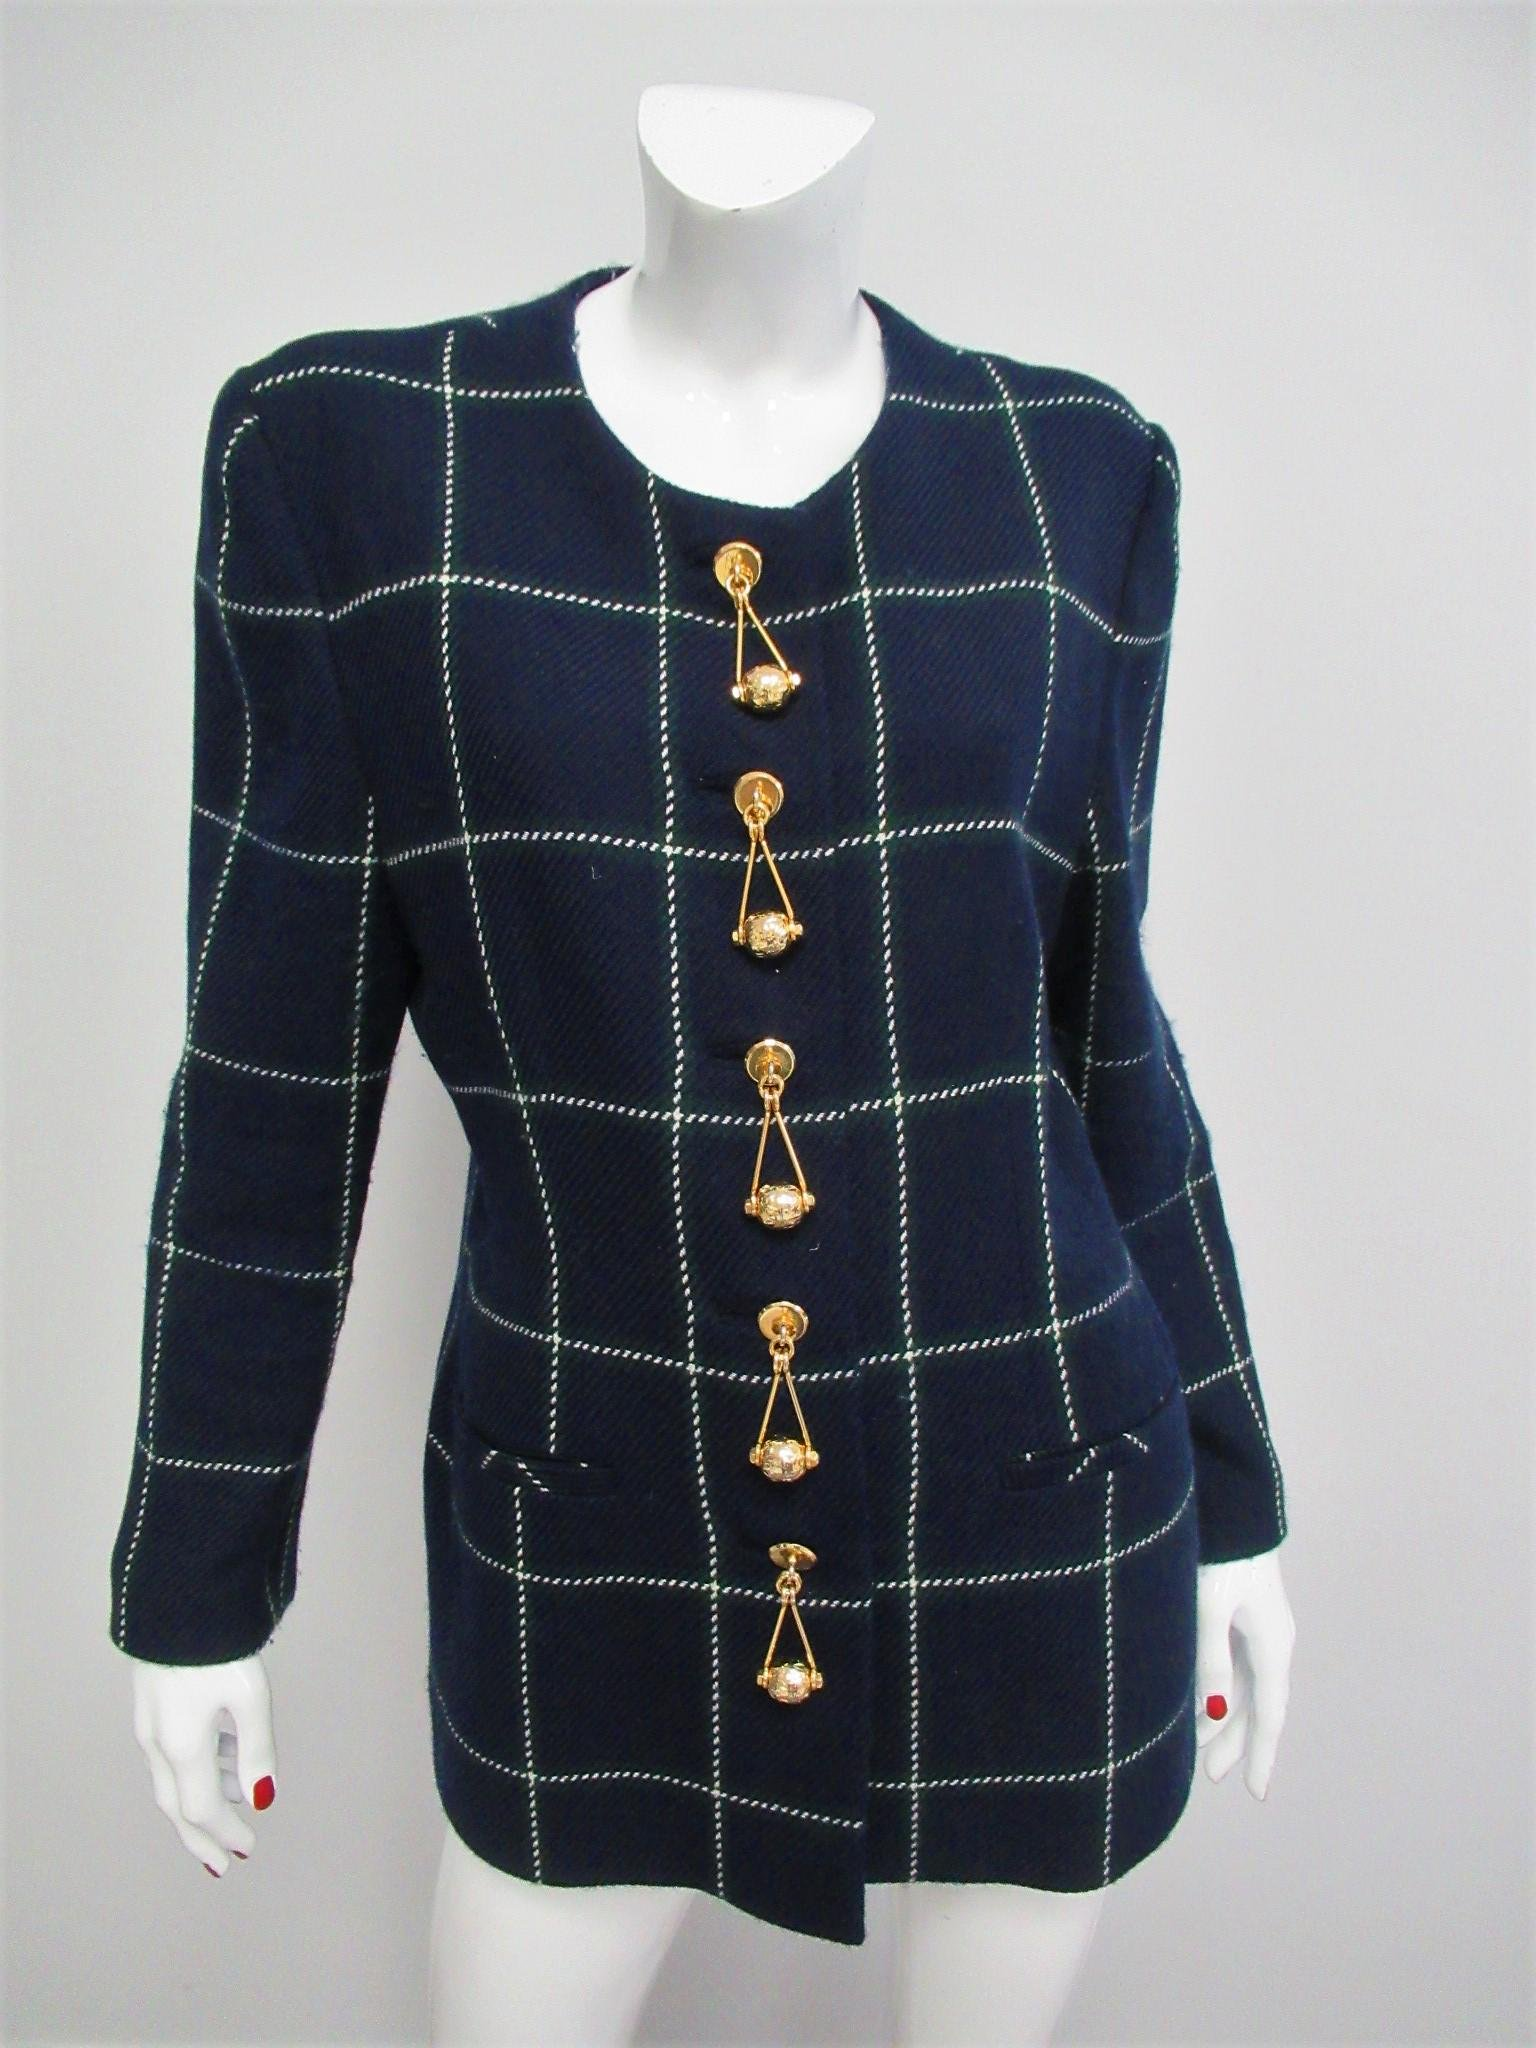 Gai Mattiolo vintage jacket in pure wool Size L